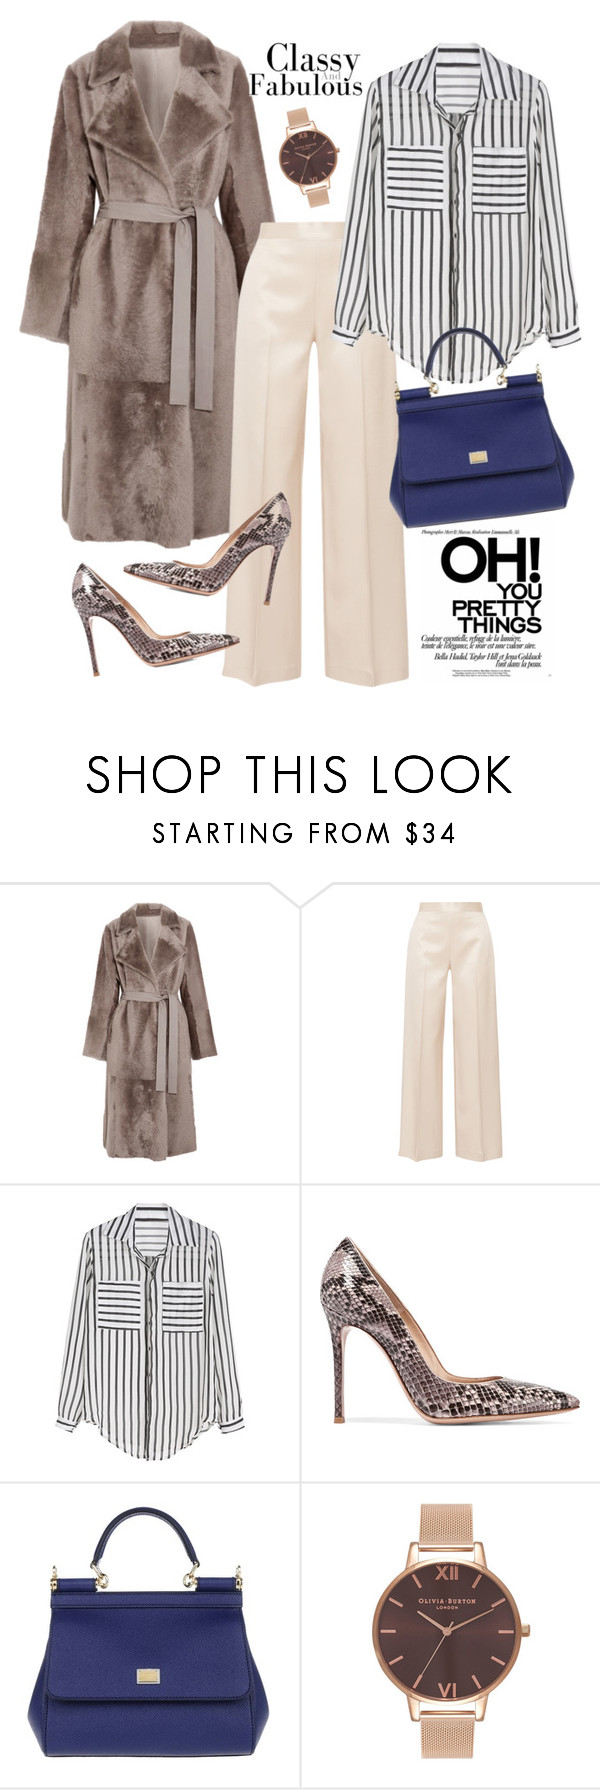 """""""chic"""" by gold-candle23 ❤ liked on Polyvore featuring Yves Salomon, The Row, Gianvito Rossi, Dolce&Gabbana, Olivia Burton, chic, classy, Elegant, Trendy and everyday"""